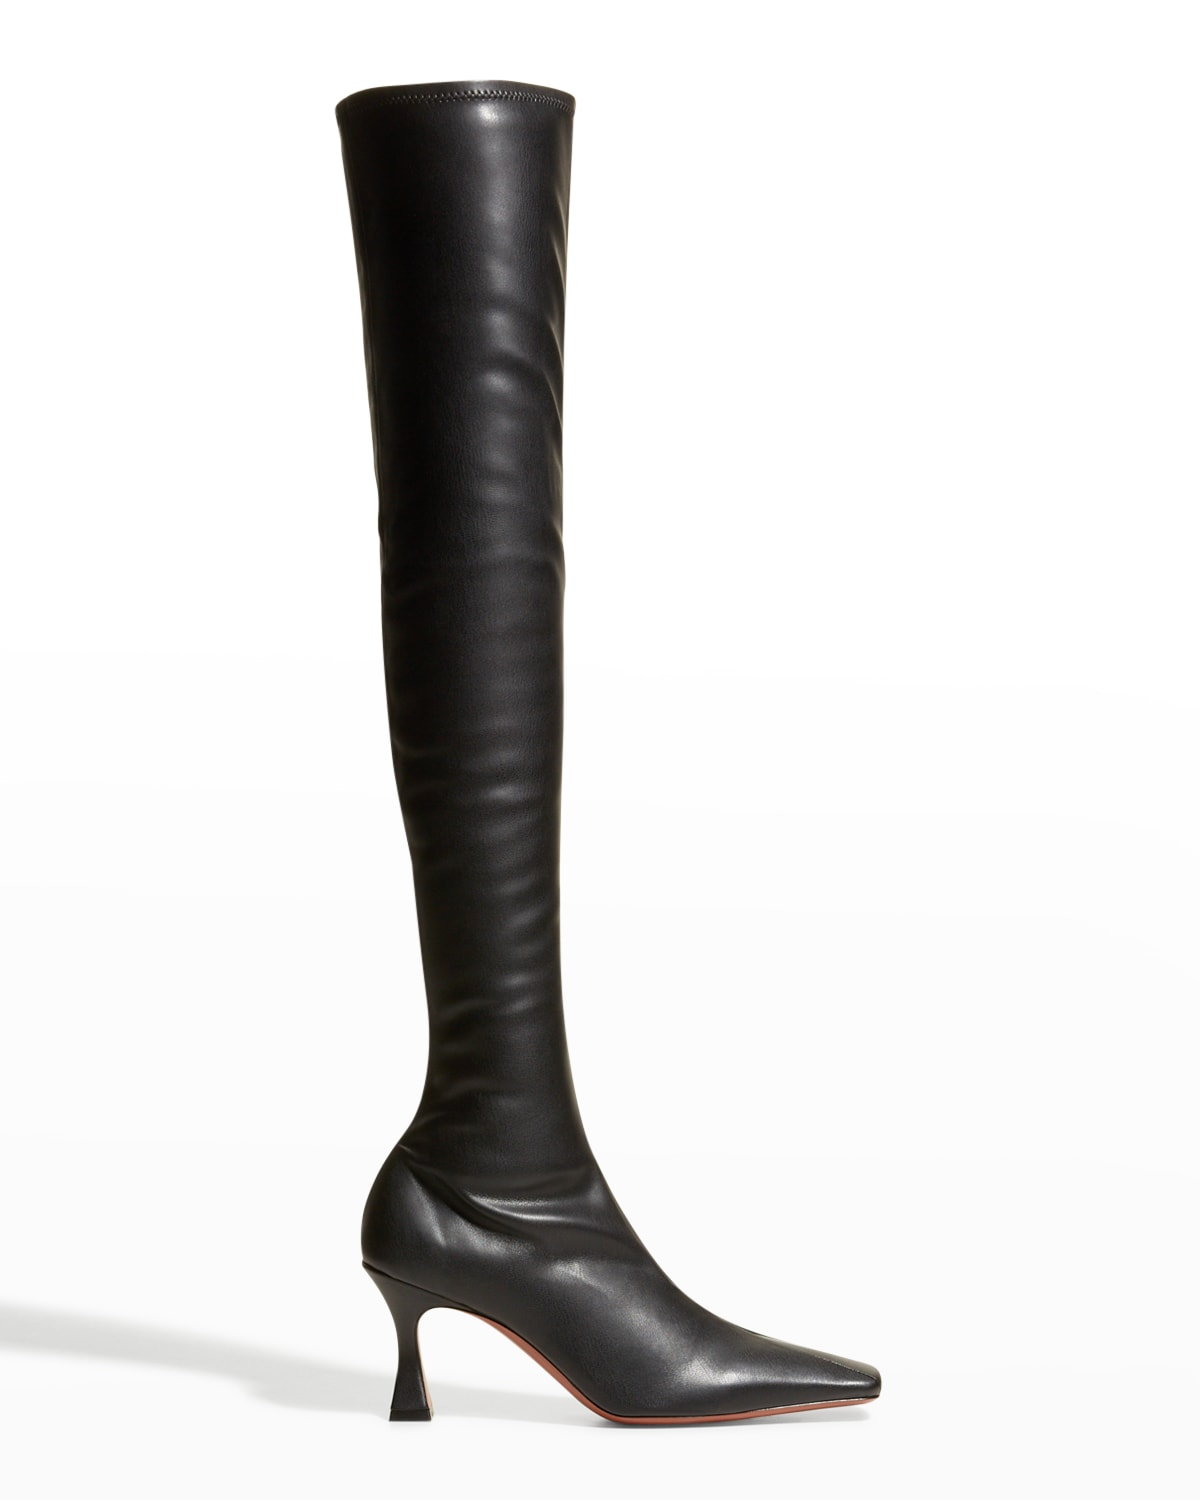 Vegan Leather Over-The-Knee Boots